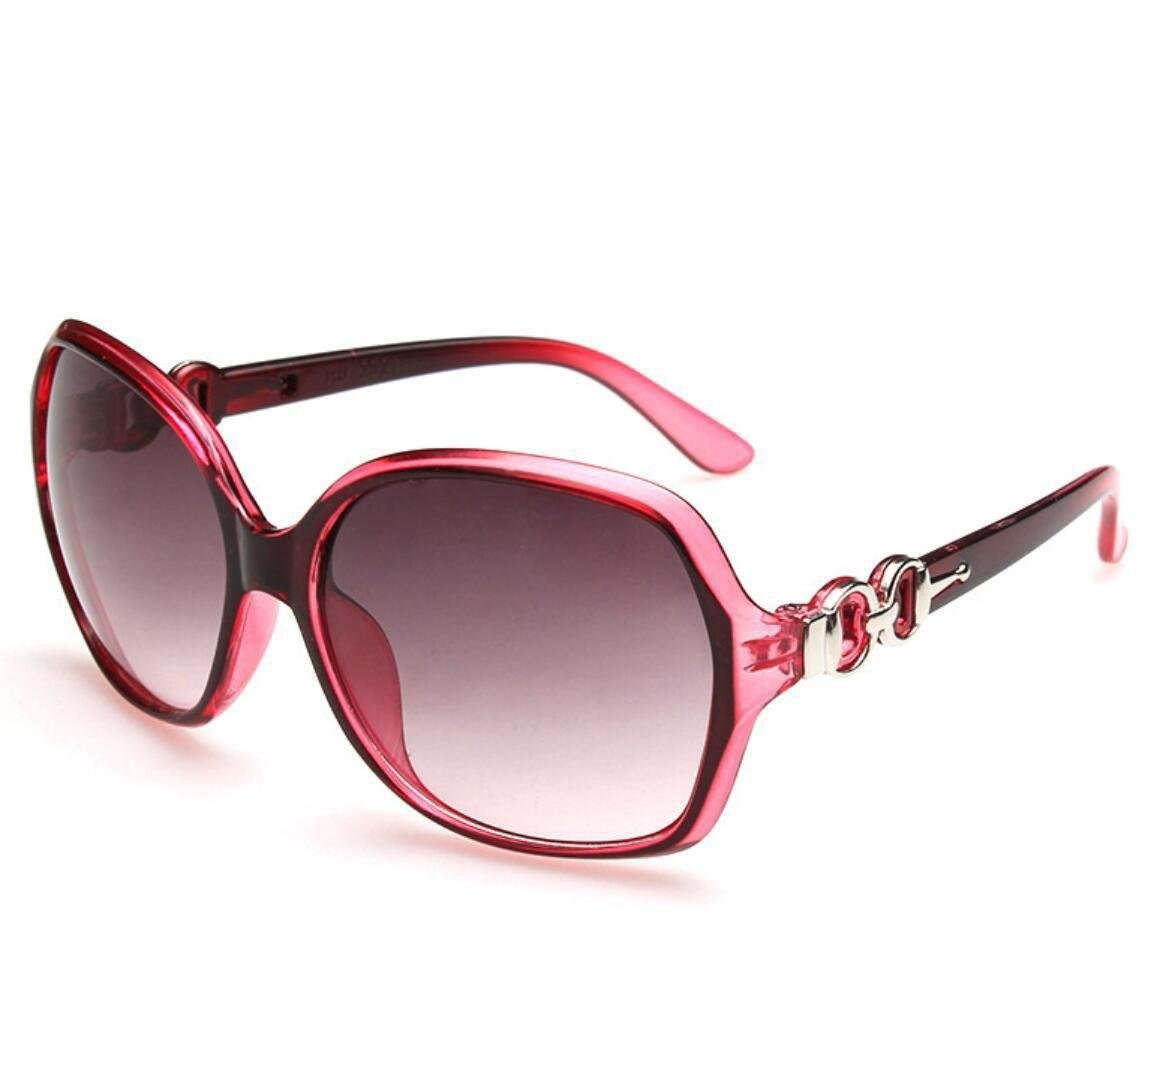 a104ff3d851 Get Quotations · ZWC New 2016 ladies classic sunglasses fashion large frame  sunglasses visor mirror